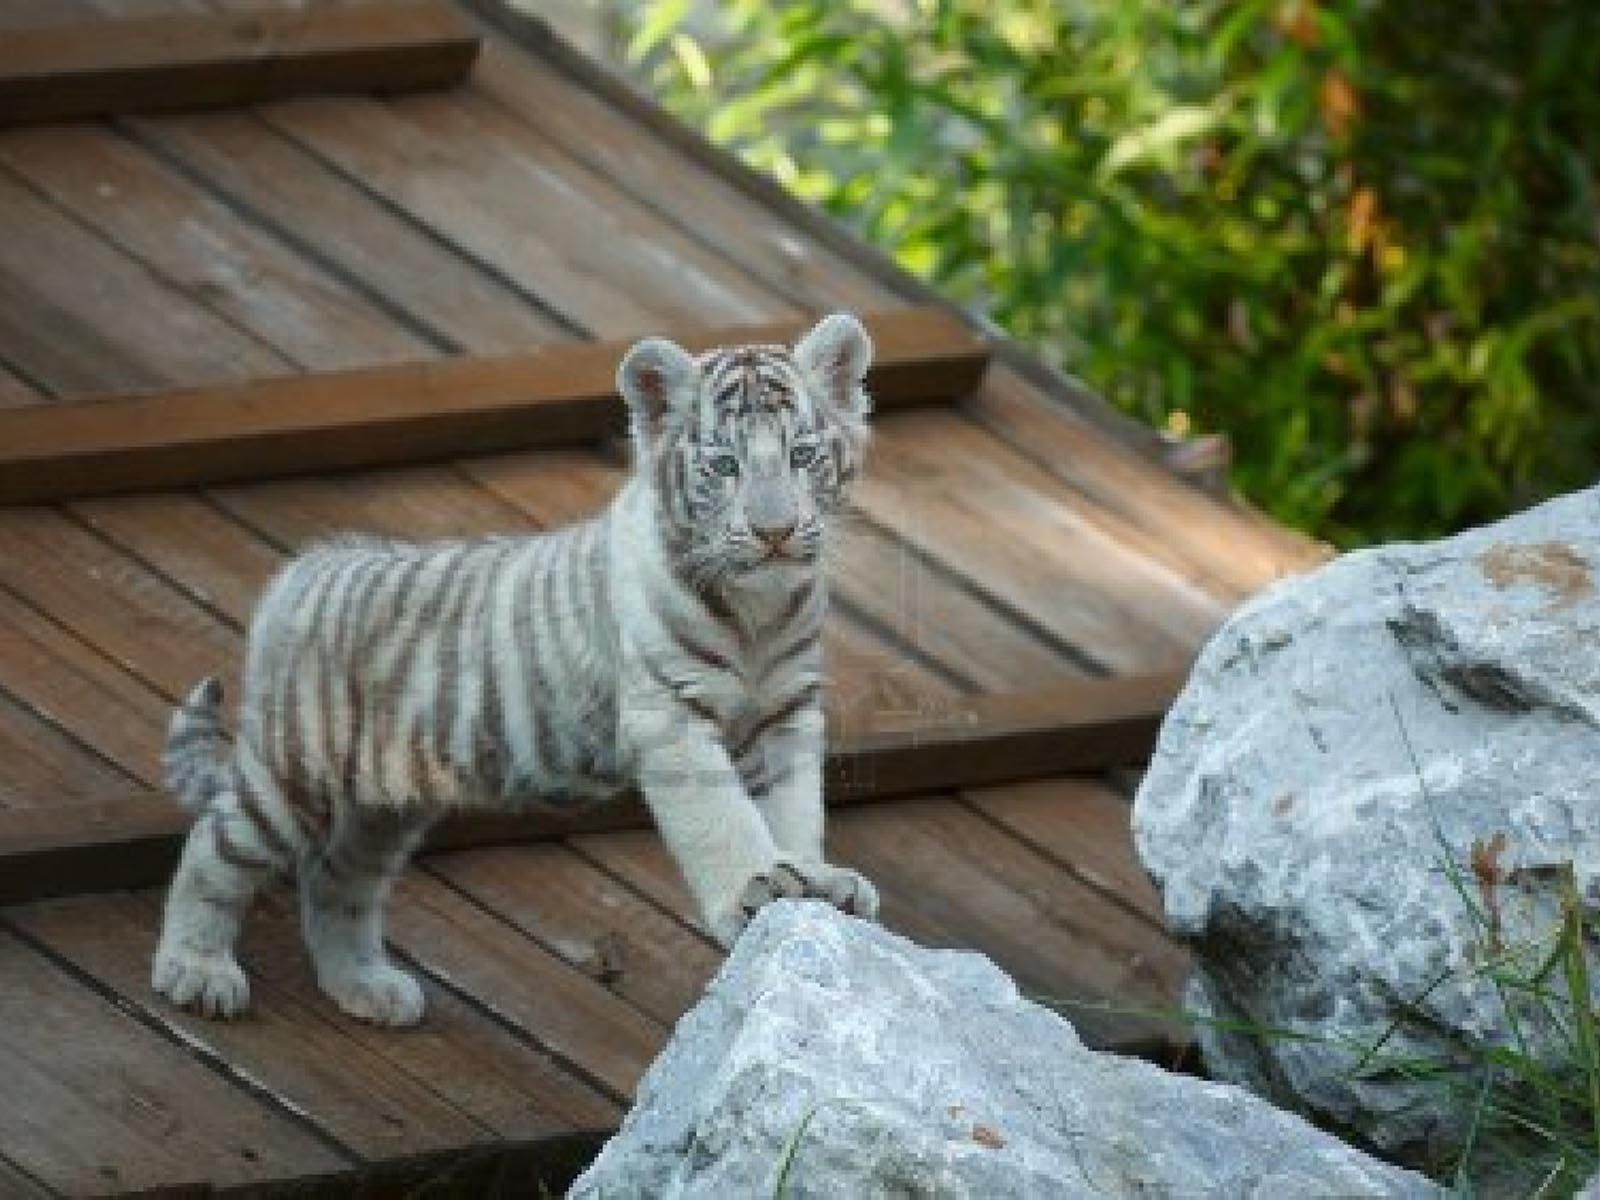 Baby White Tigers Wallpapers 2013 Wallpaper Tiger Wallpaper Pet Tiger Cubs Wallpaper